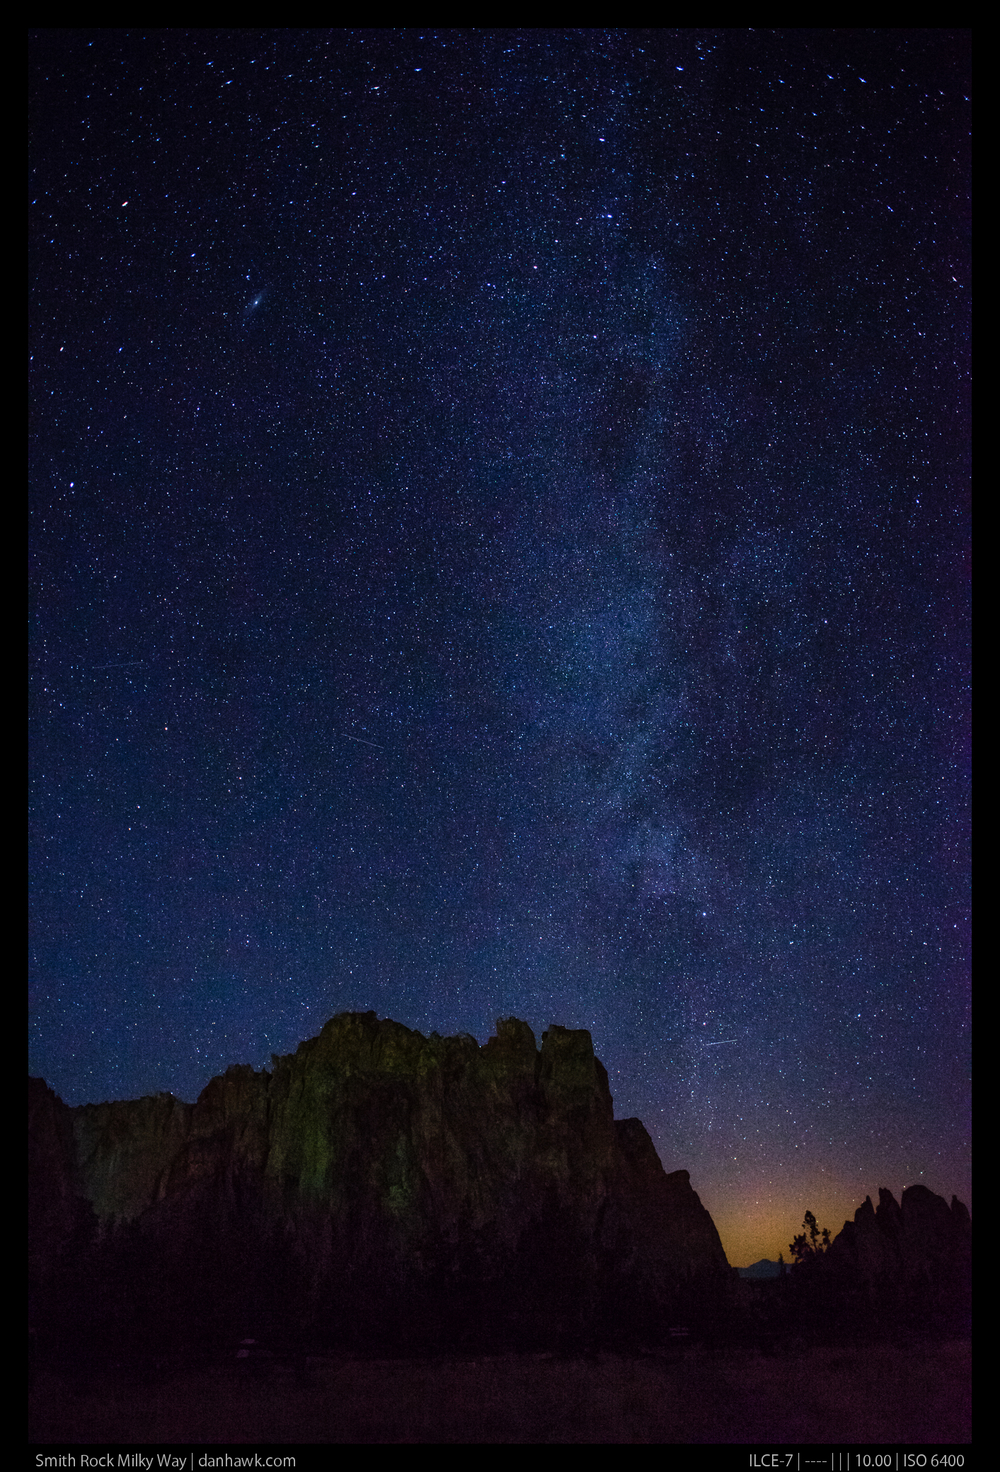 Smith Rock Milky Way